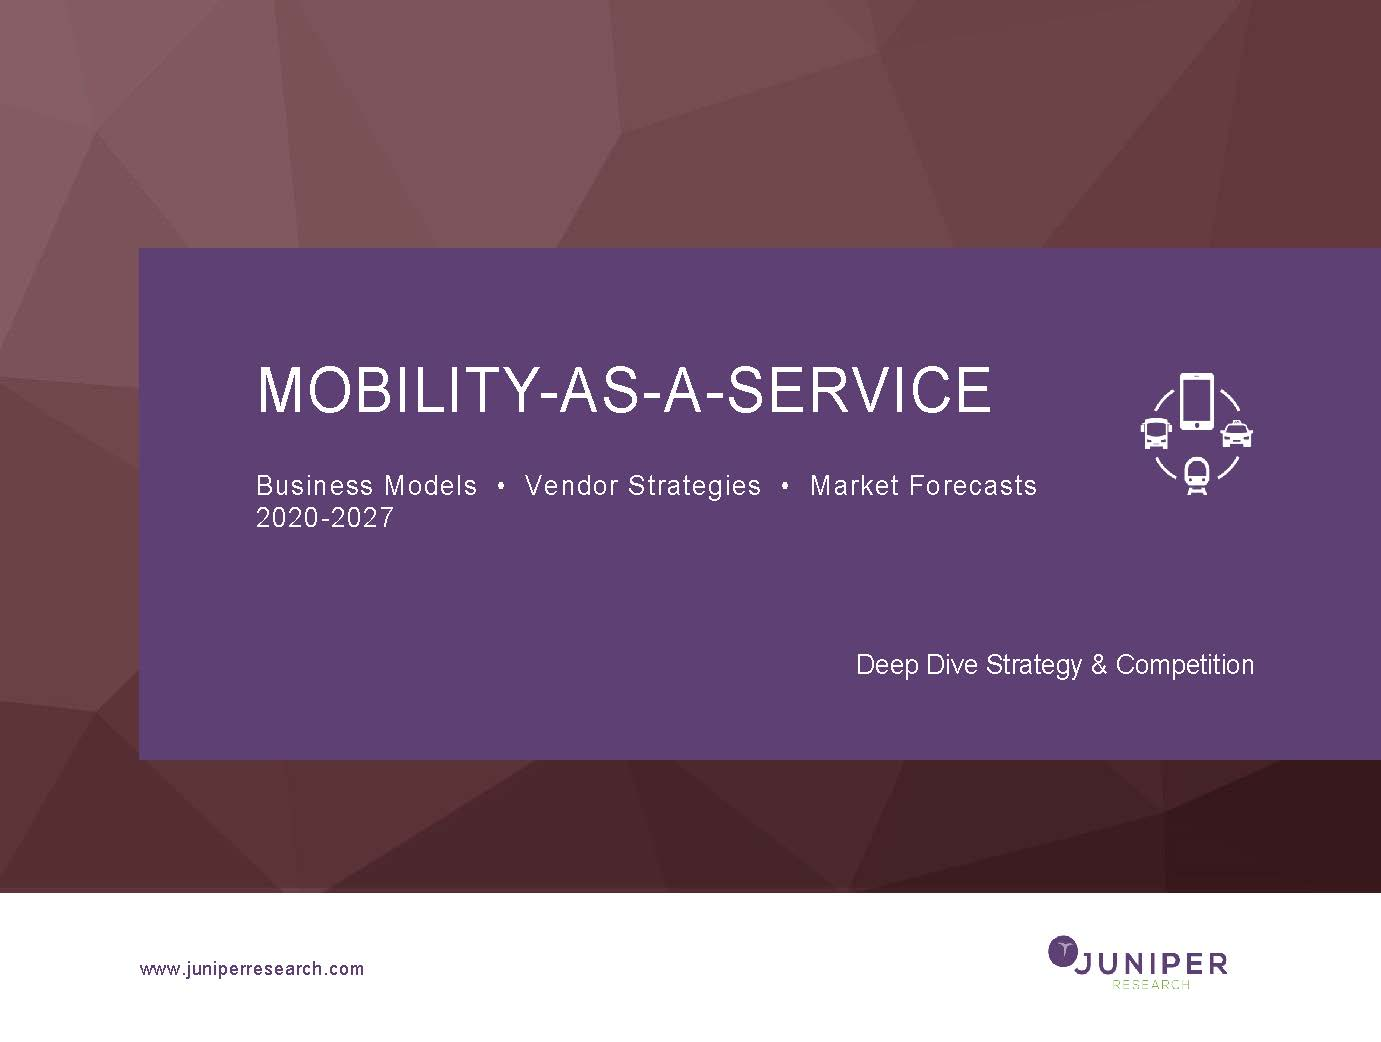 Mobility-as-a-Service Deep Dive Strategy & Competition - 2020-2027